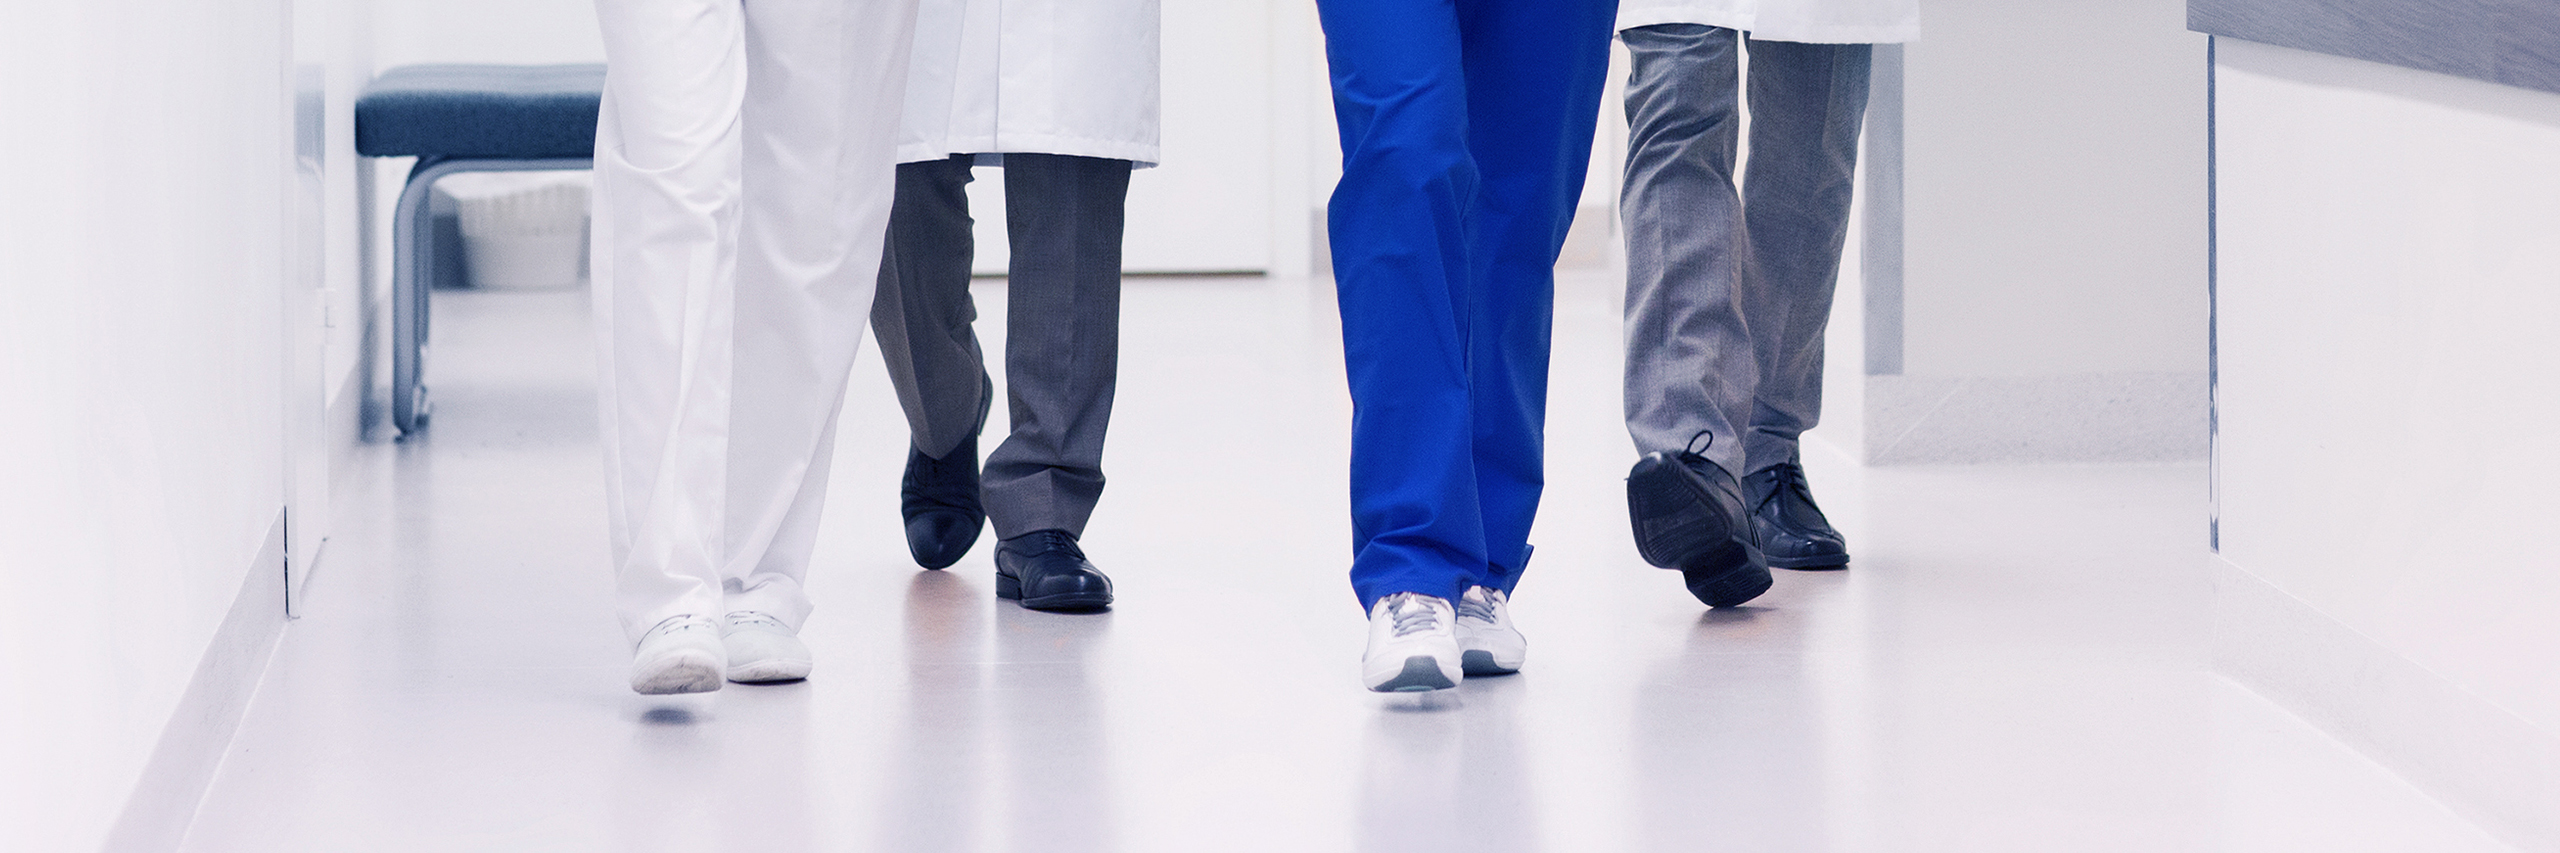 doctors walking down hospital hall